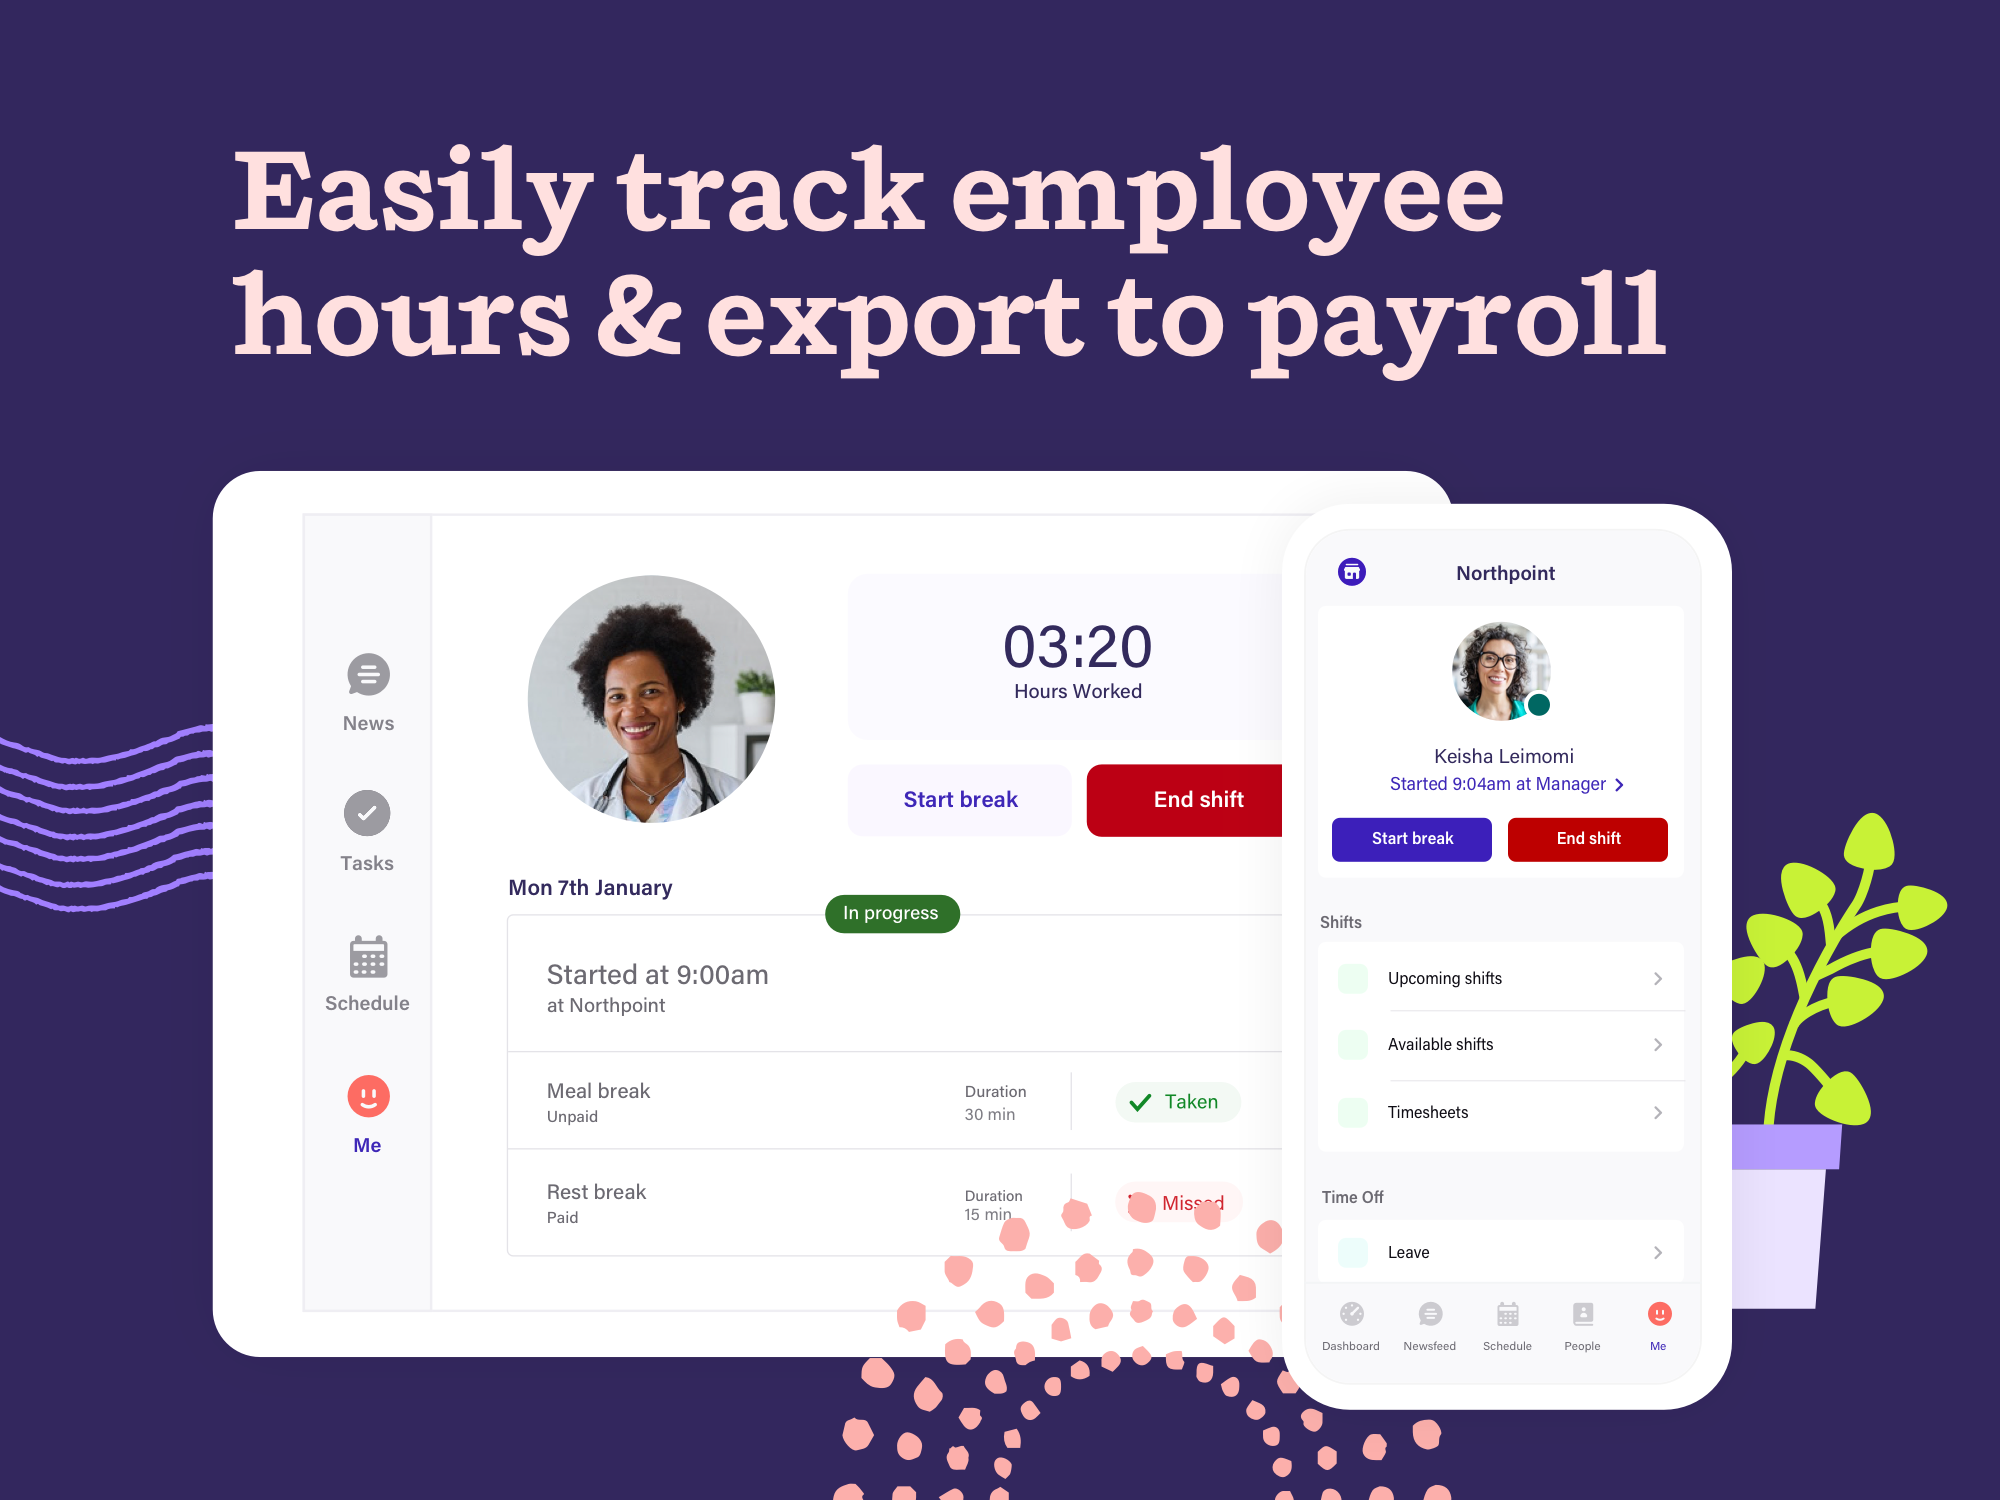 Make it simple for employees to clock in and out from any device, with geolocation capture and facial recognition.  Streamline timesheets and attendance records, seamlessly export to payroll.